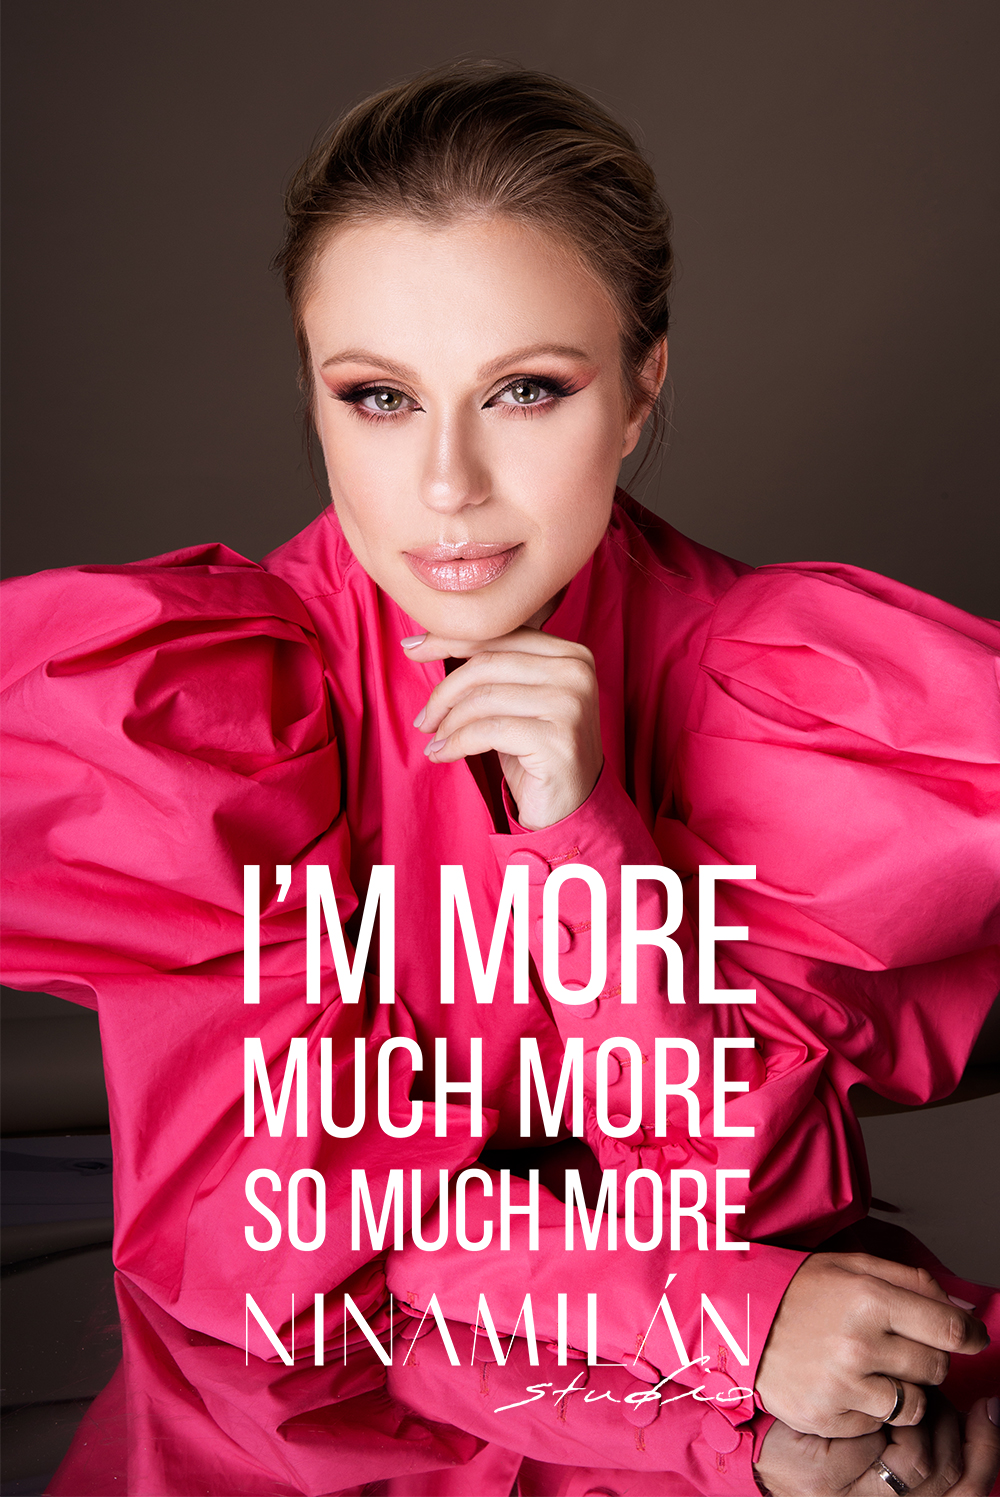 NINA INTERVIEW 3 Nina Milović: IM MORE, MUCH MORE, SO MUCH MORE